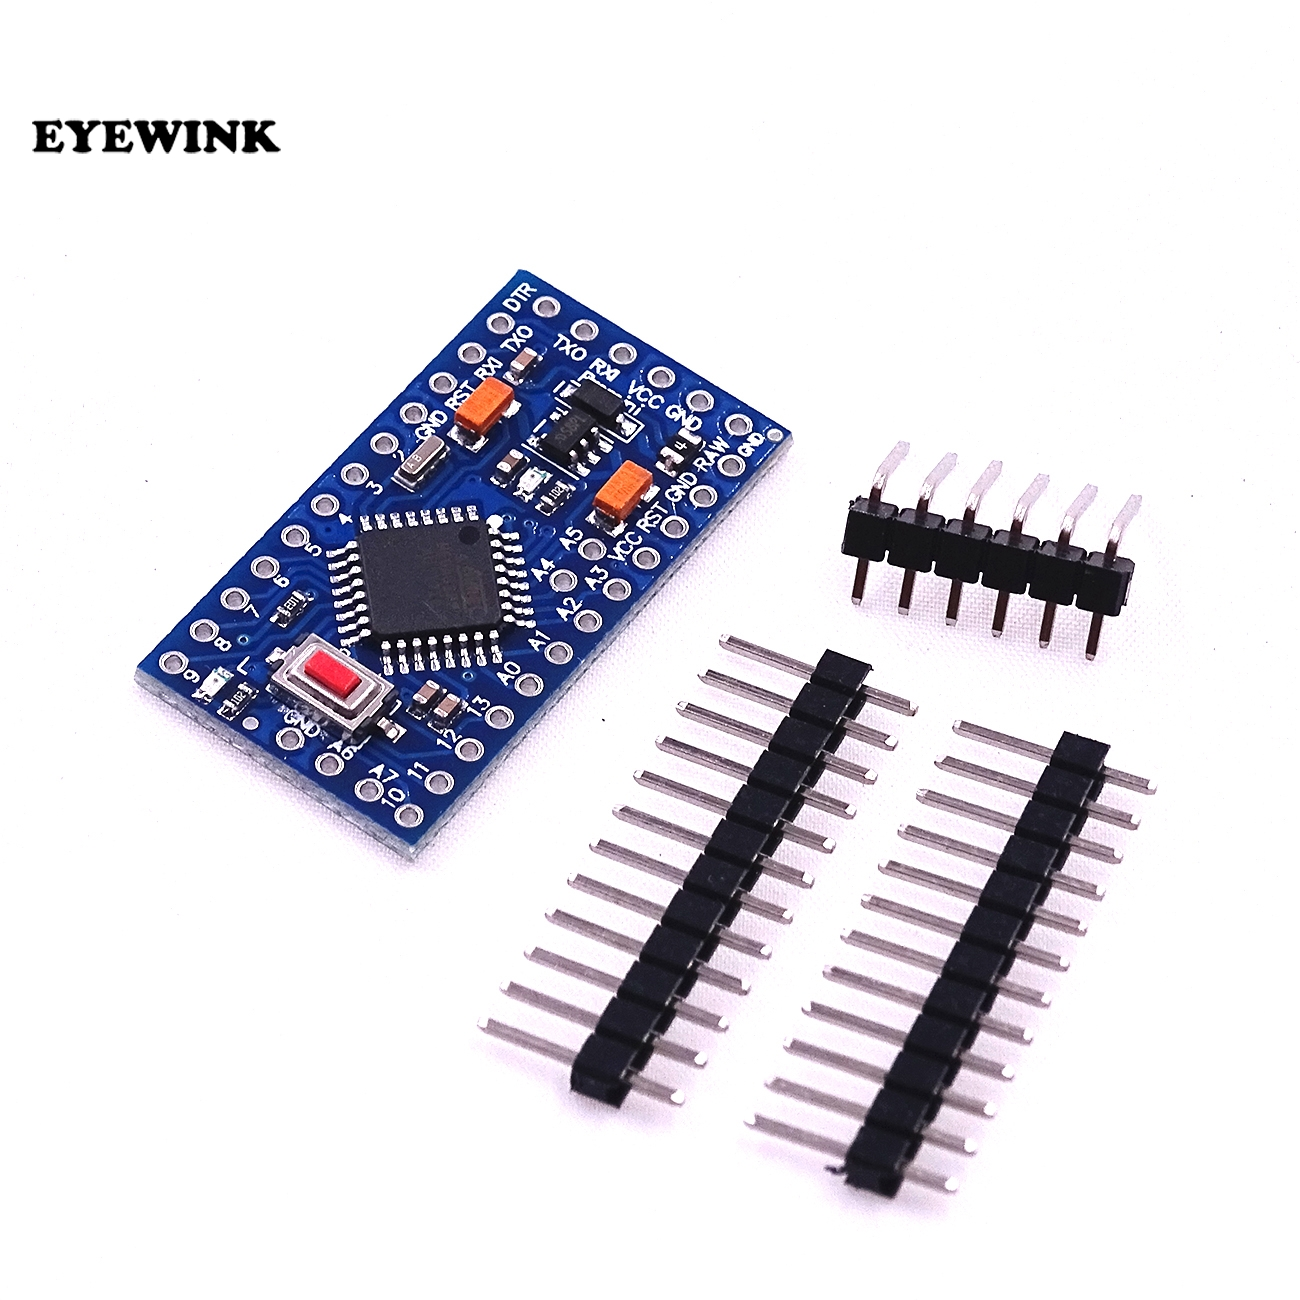 Pcs lot atmega p pro mini v mhz